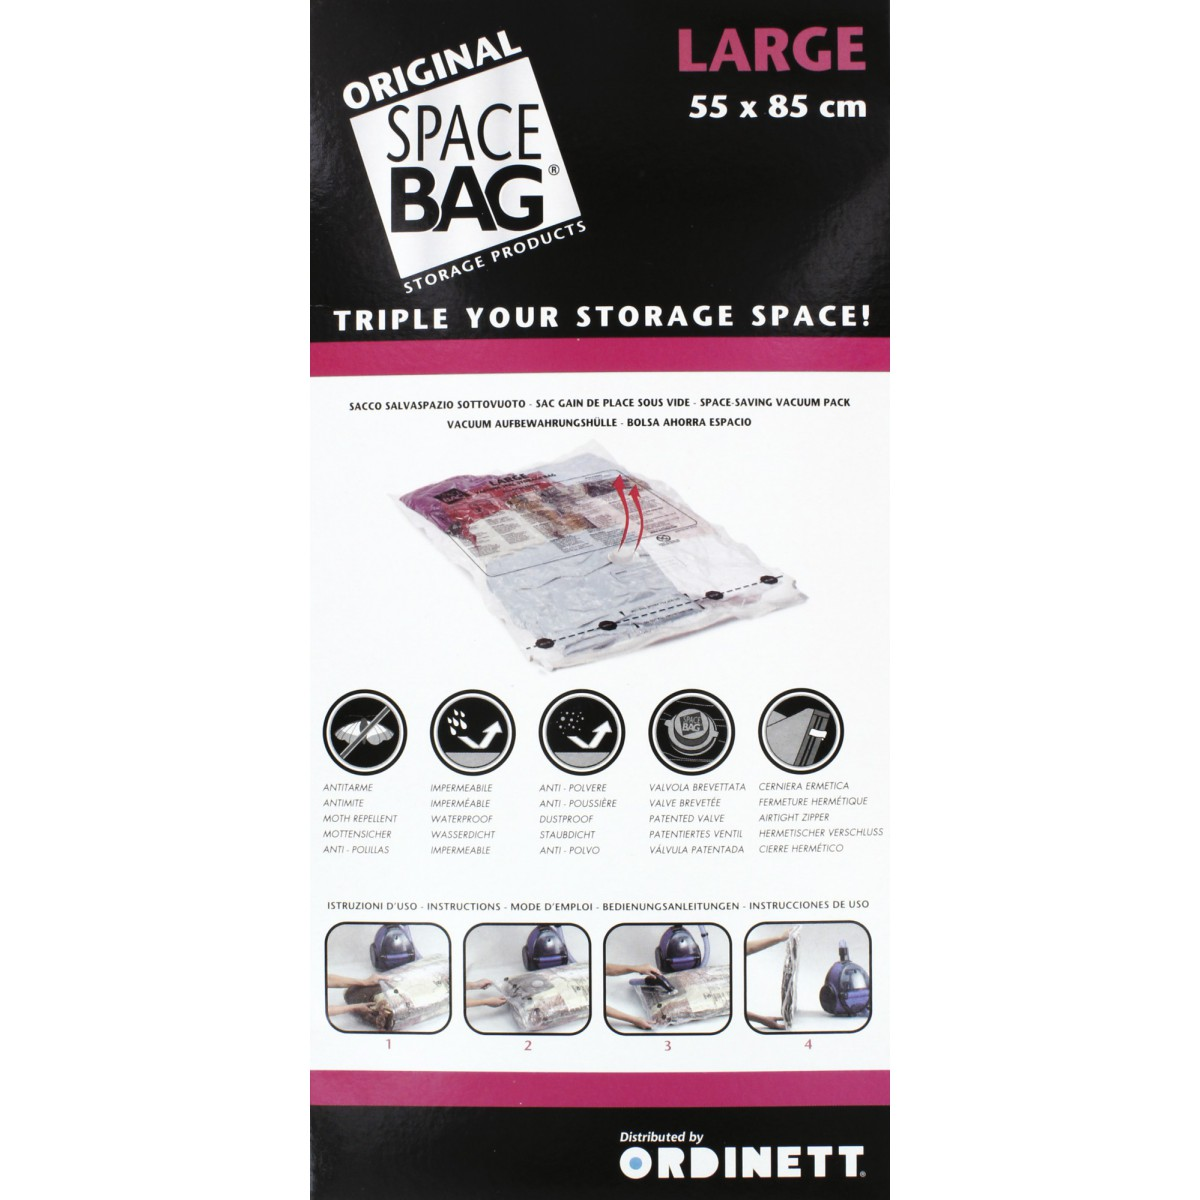 Housse gain de place Space Bag - Sac bag large - Dimensions 55 x 85 cm